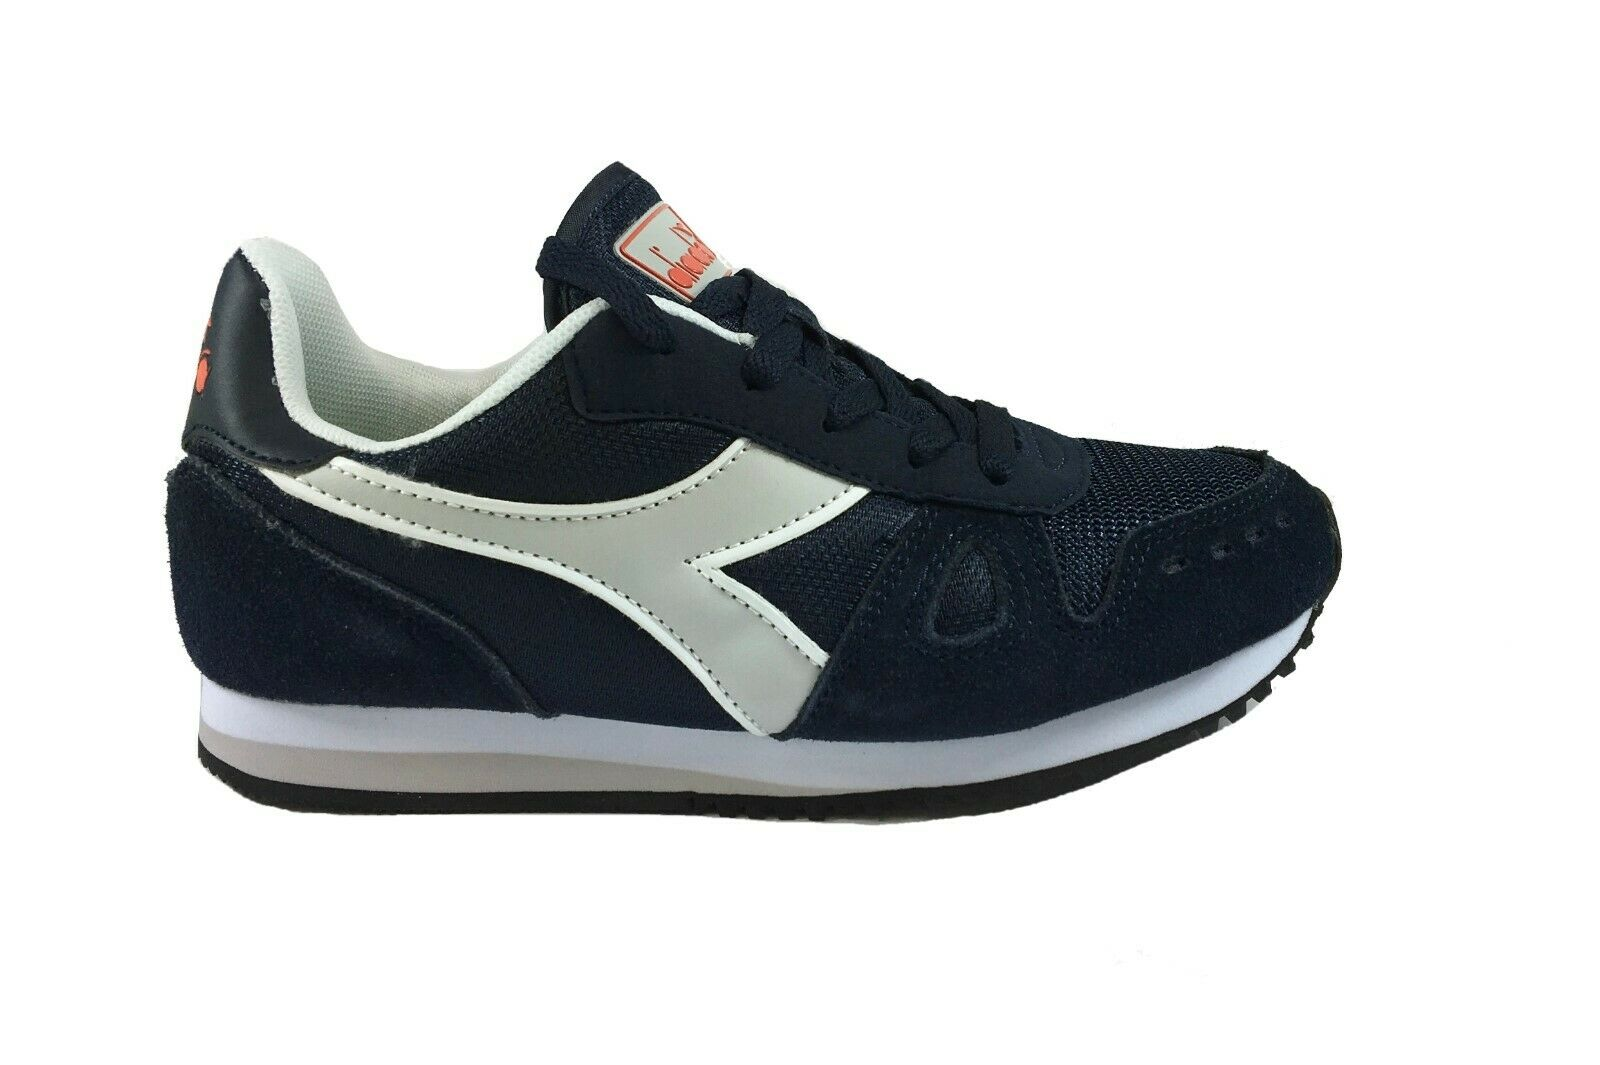 shoes Sportive Sneakers women Casual Moda Diadora Simple Run GS 4382